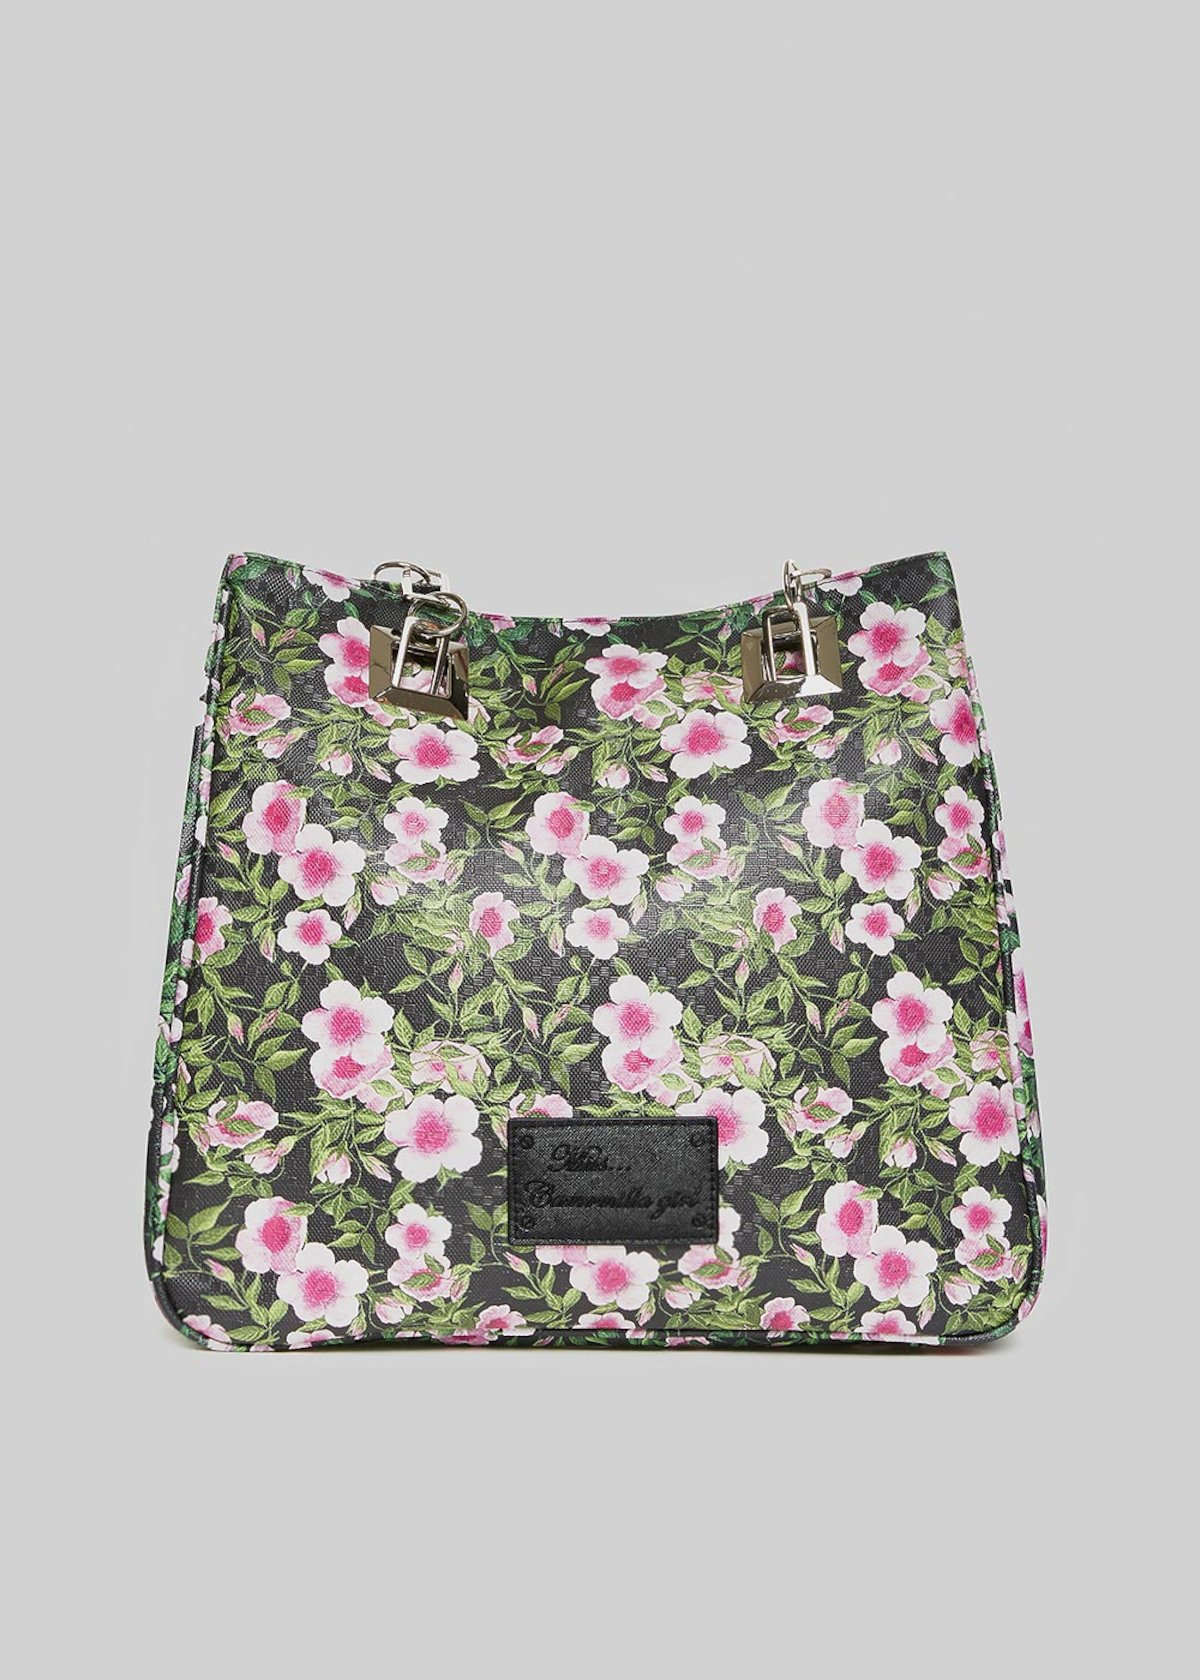 Mmissflo4 shopping bag in faux leather flowers print